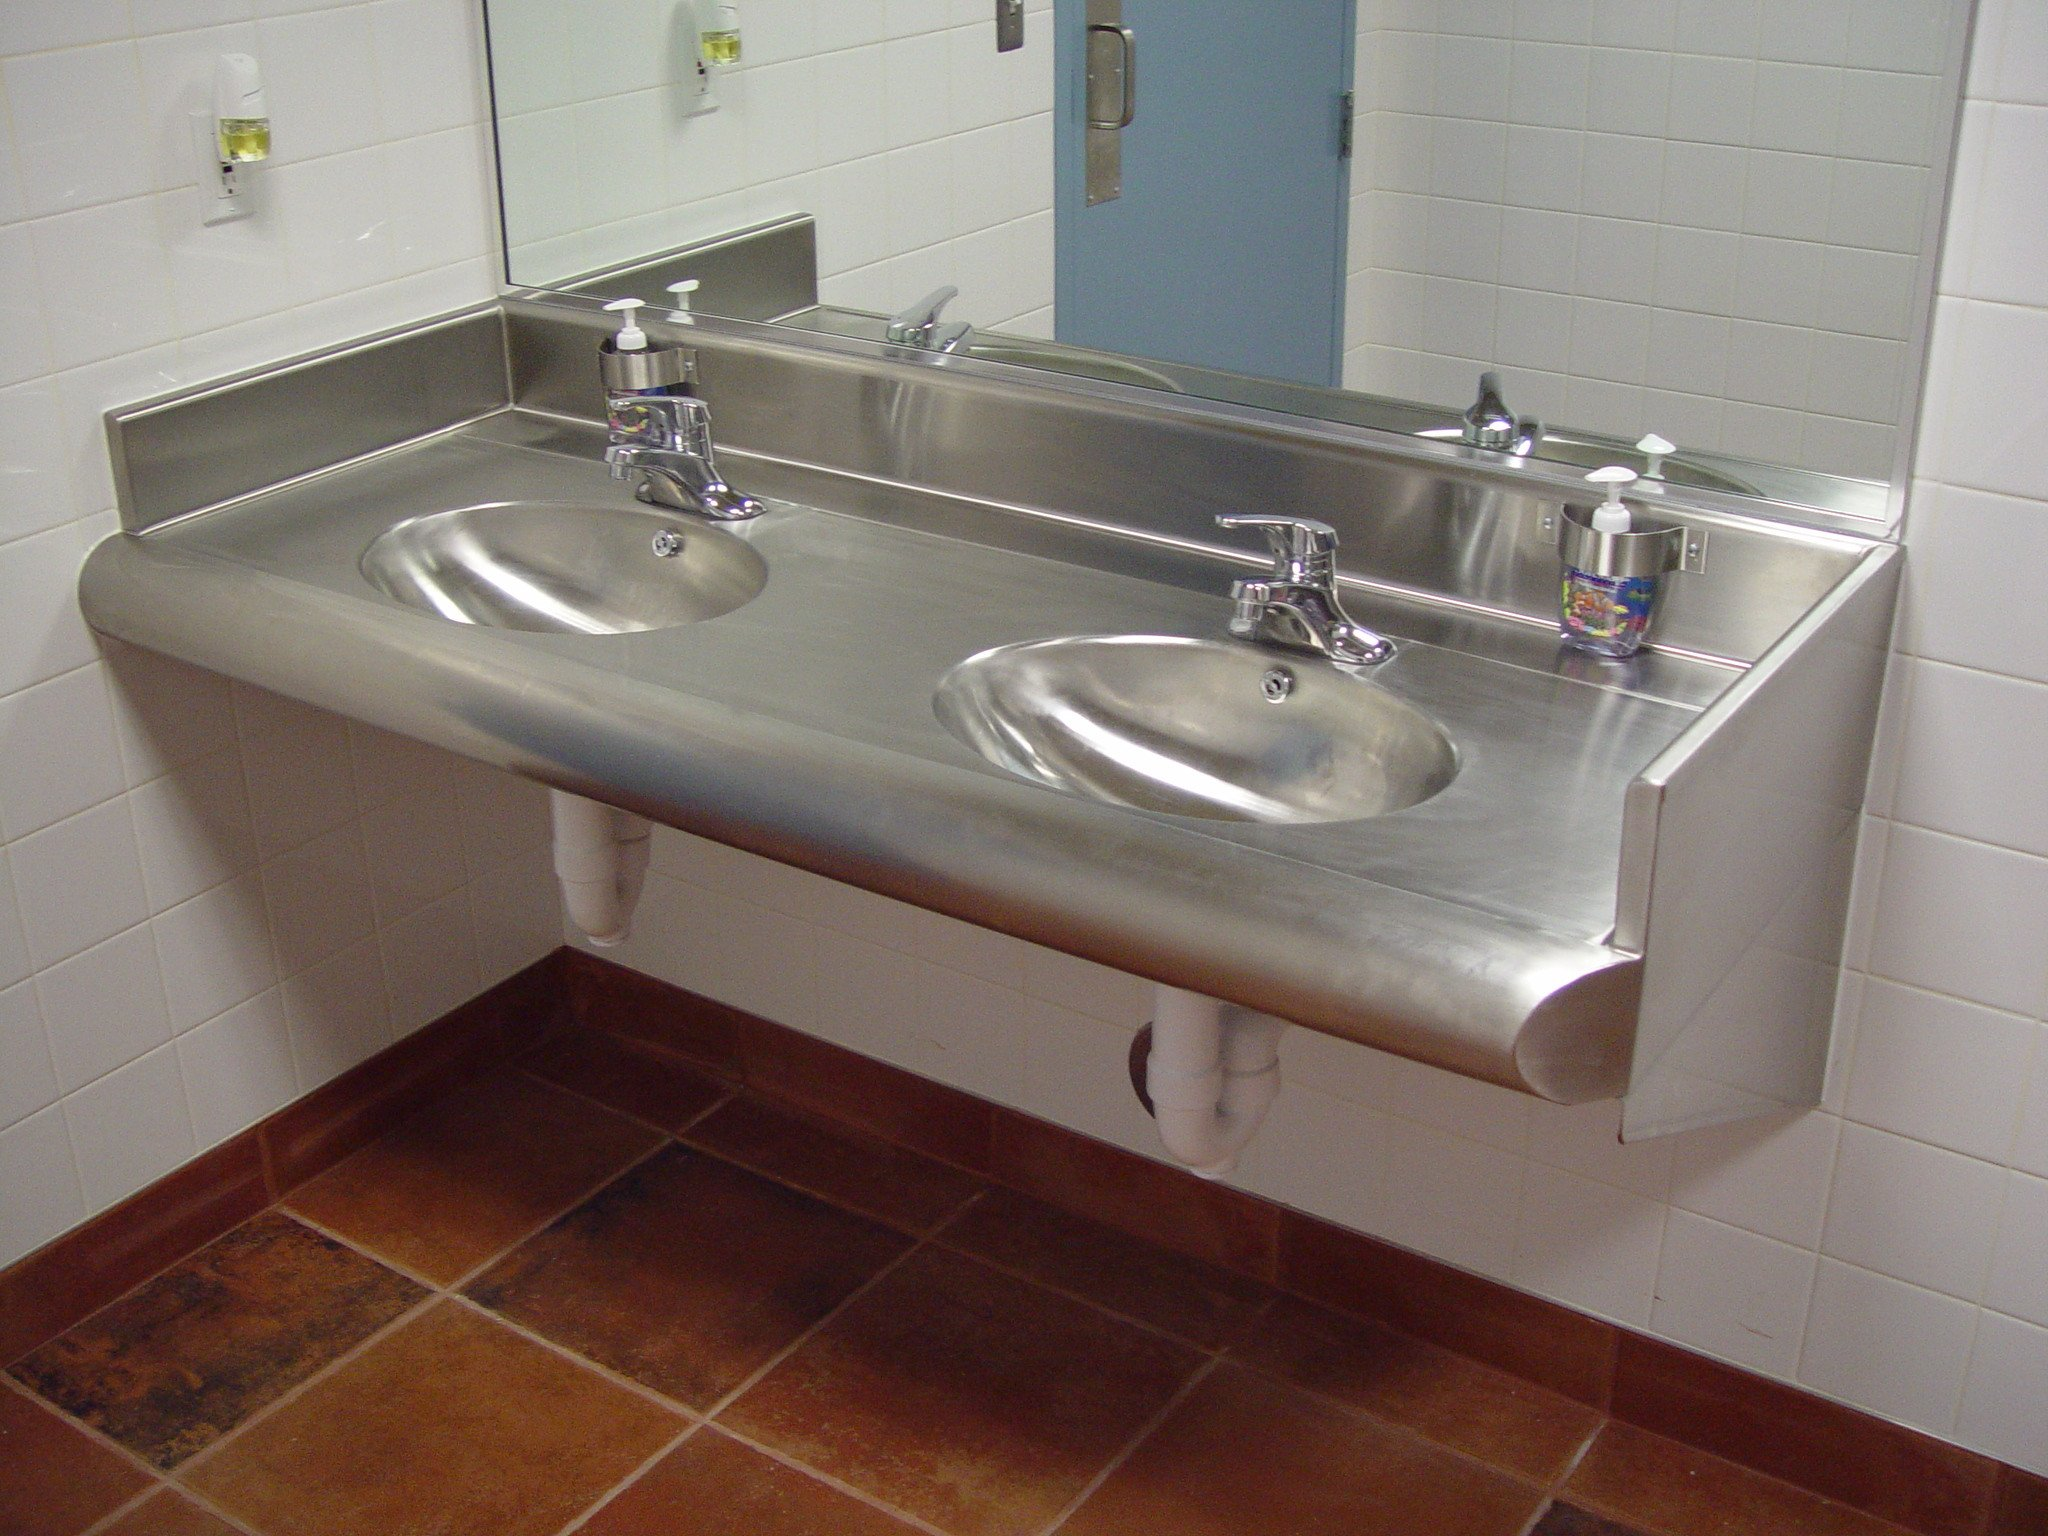 Restroom Vanity Assembly Double Bowl Rva 84 2b 0 00 Asi Equip Commercial Kitchen And Bar Equipment